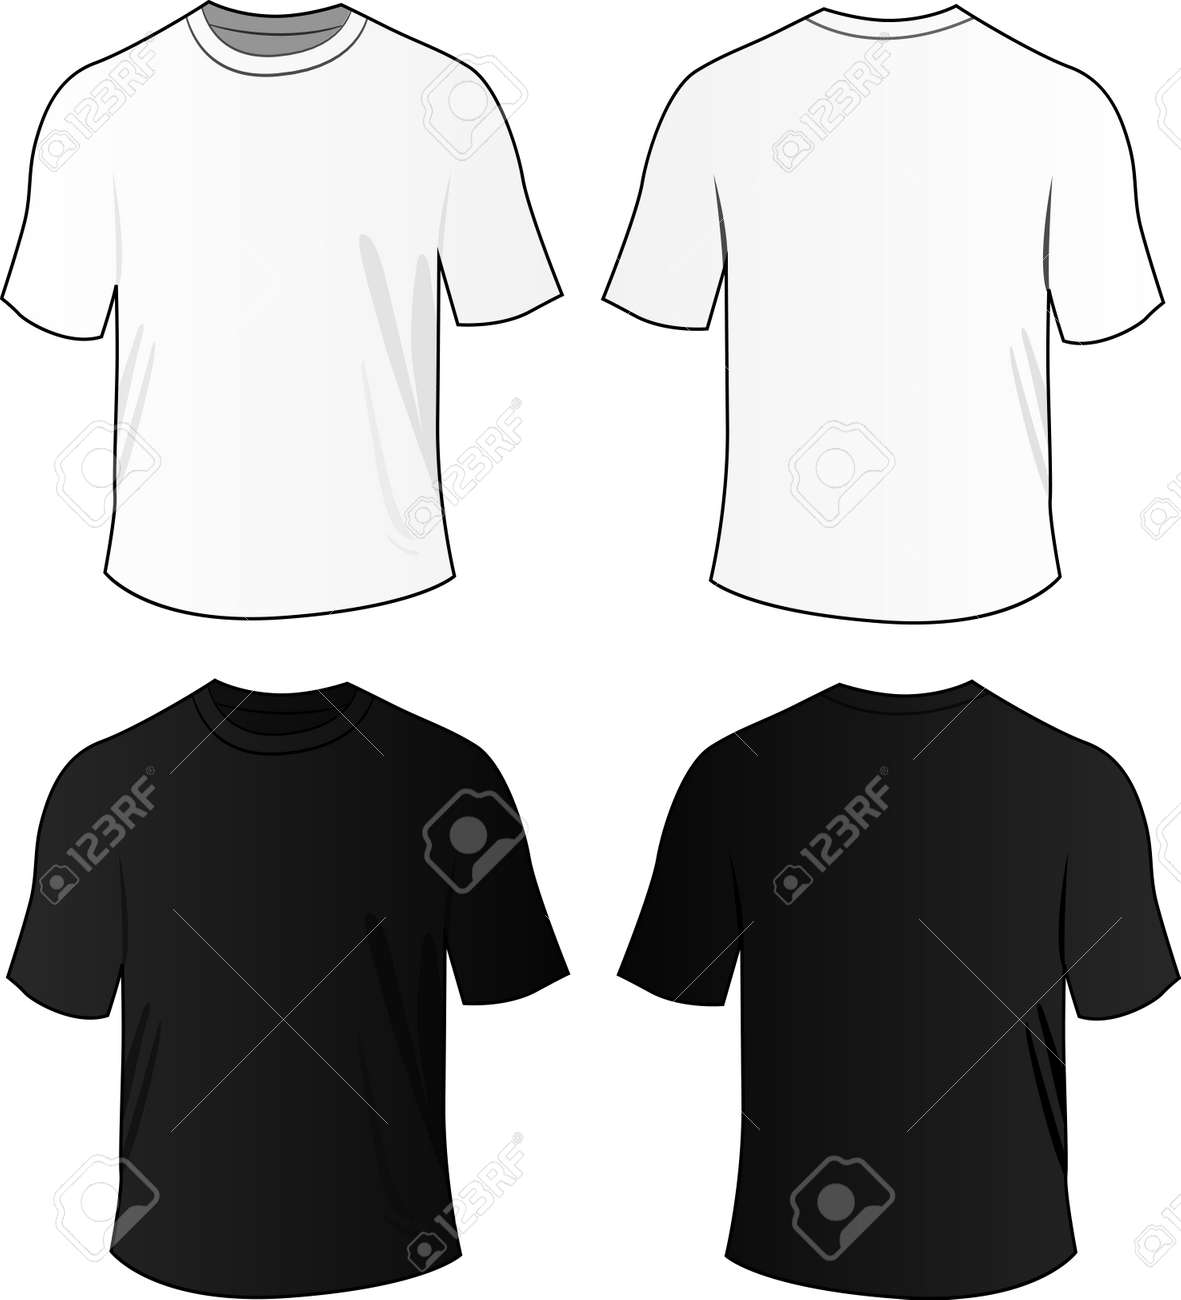 Vector Illustration Of Black And White Blank Tee Shirts Royalty Free